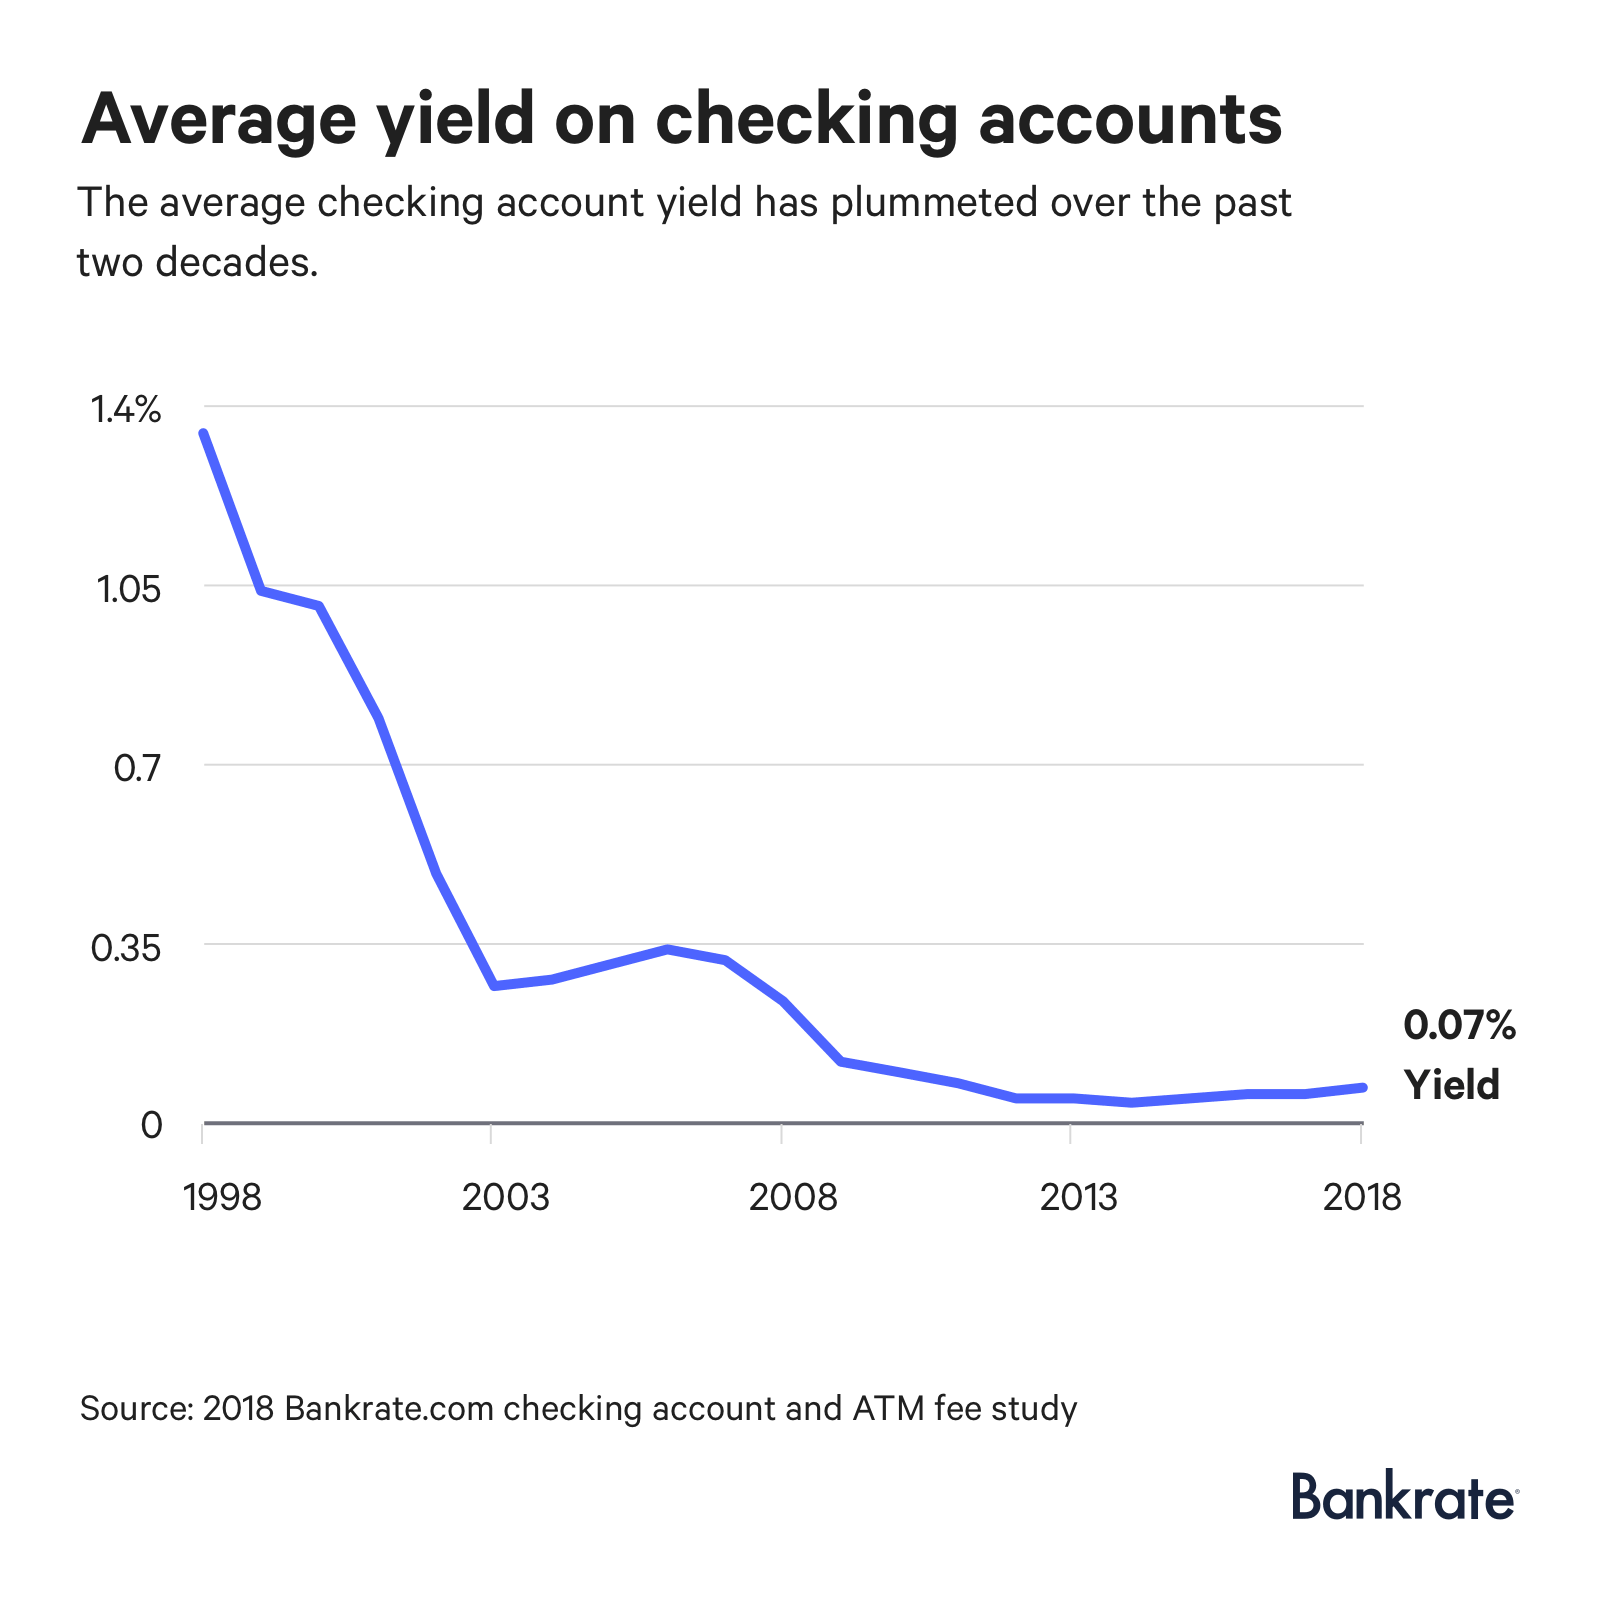 Graph: The average yield on checking accounts is 0.07%.